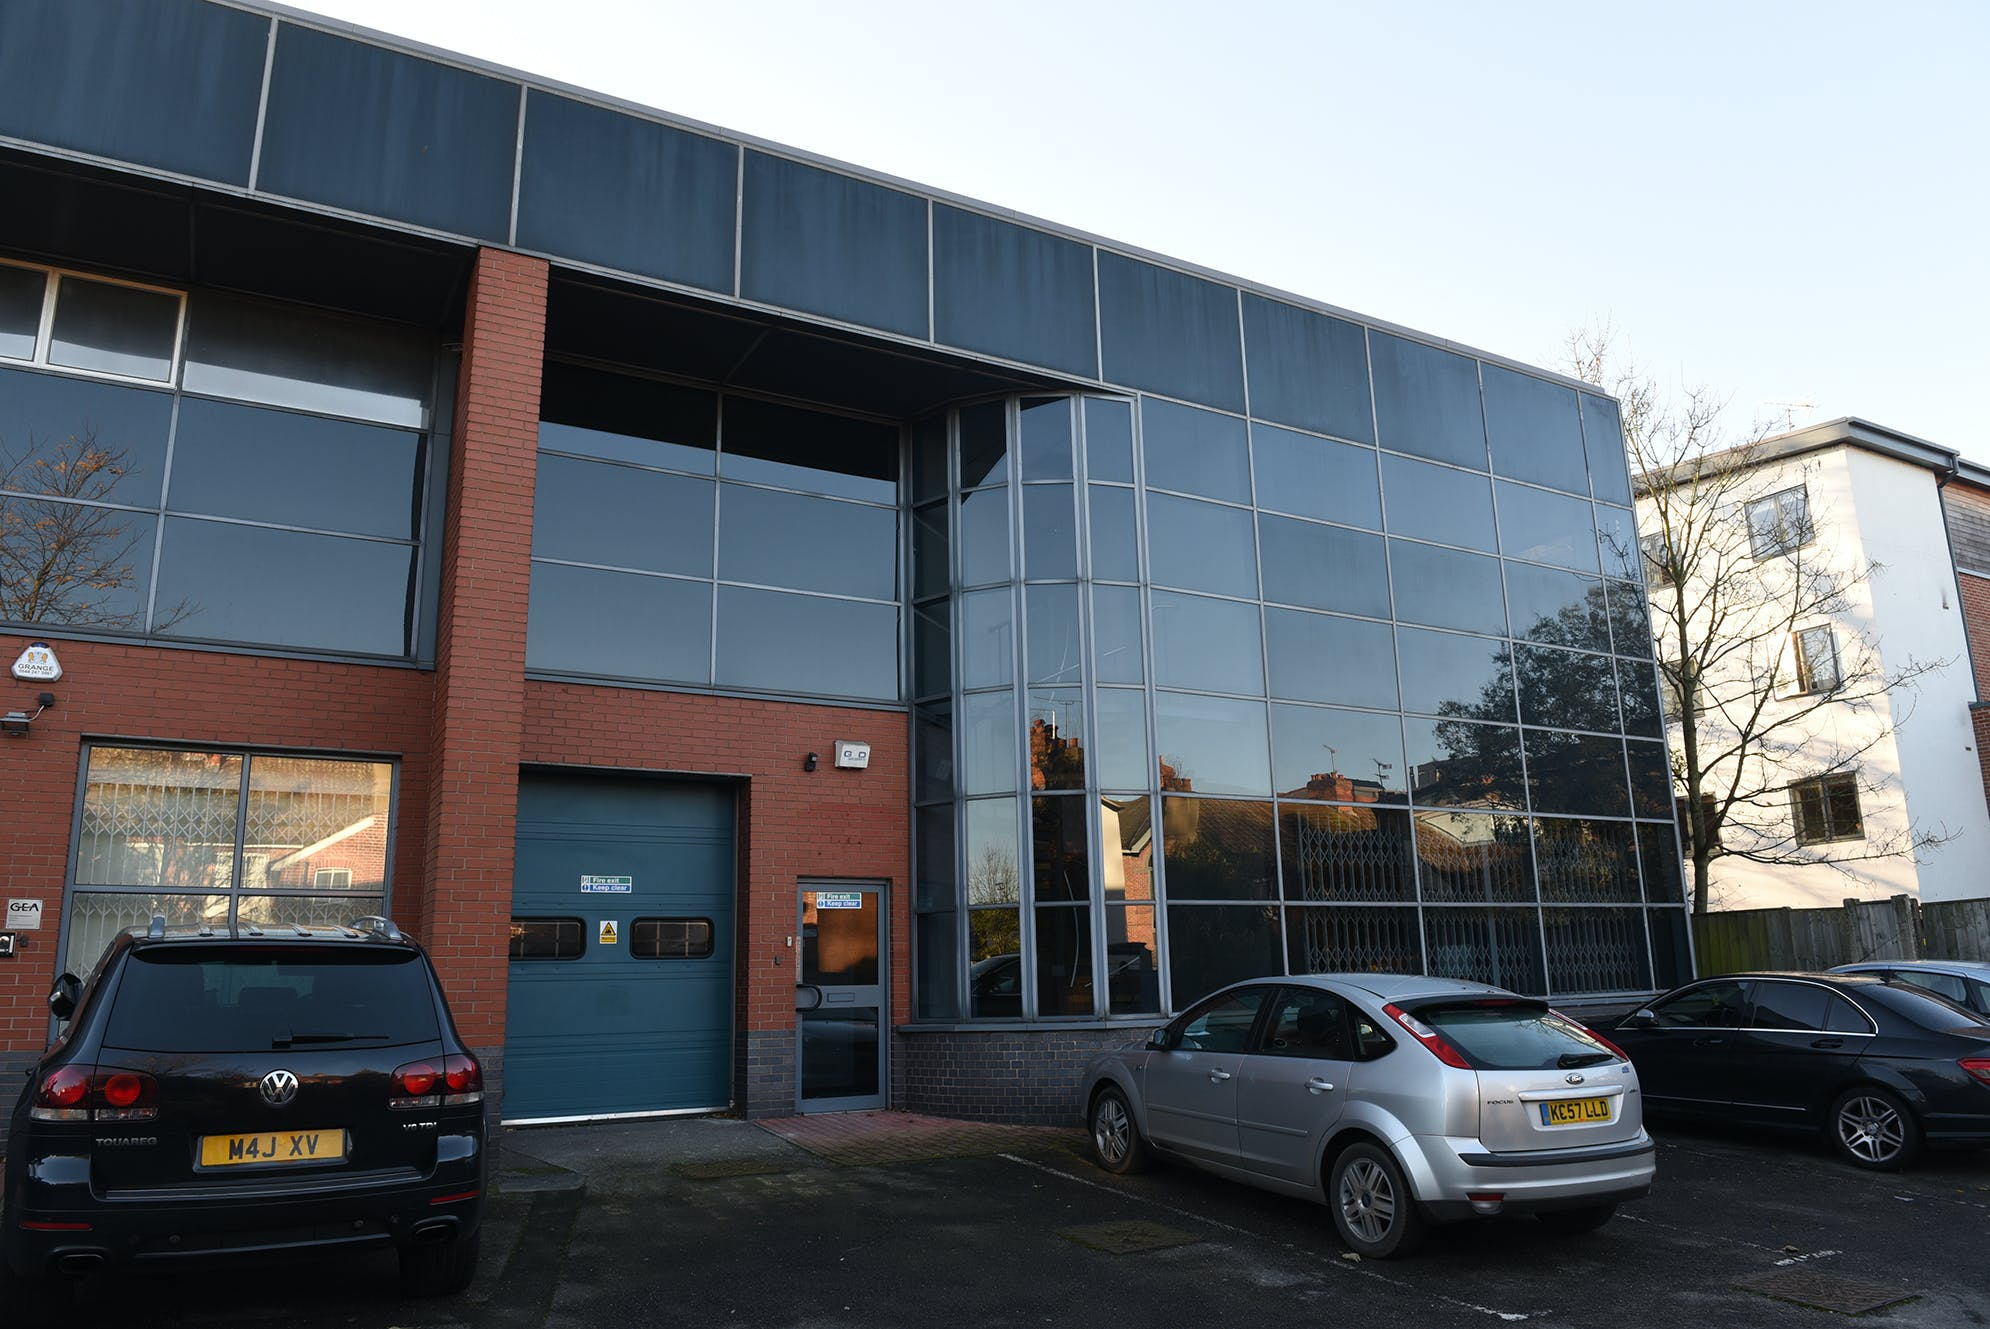 3 & 4 Bell Business Centre, Maidenhead, Offices To Let - ec51c94ab4fb318d28352f0c3358a0b1cd6a021e.jpg